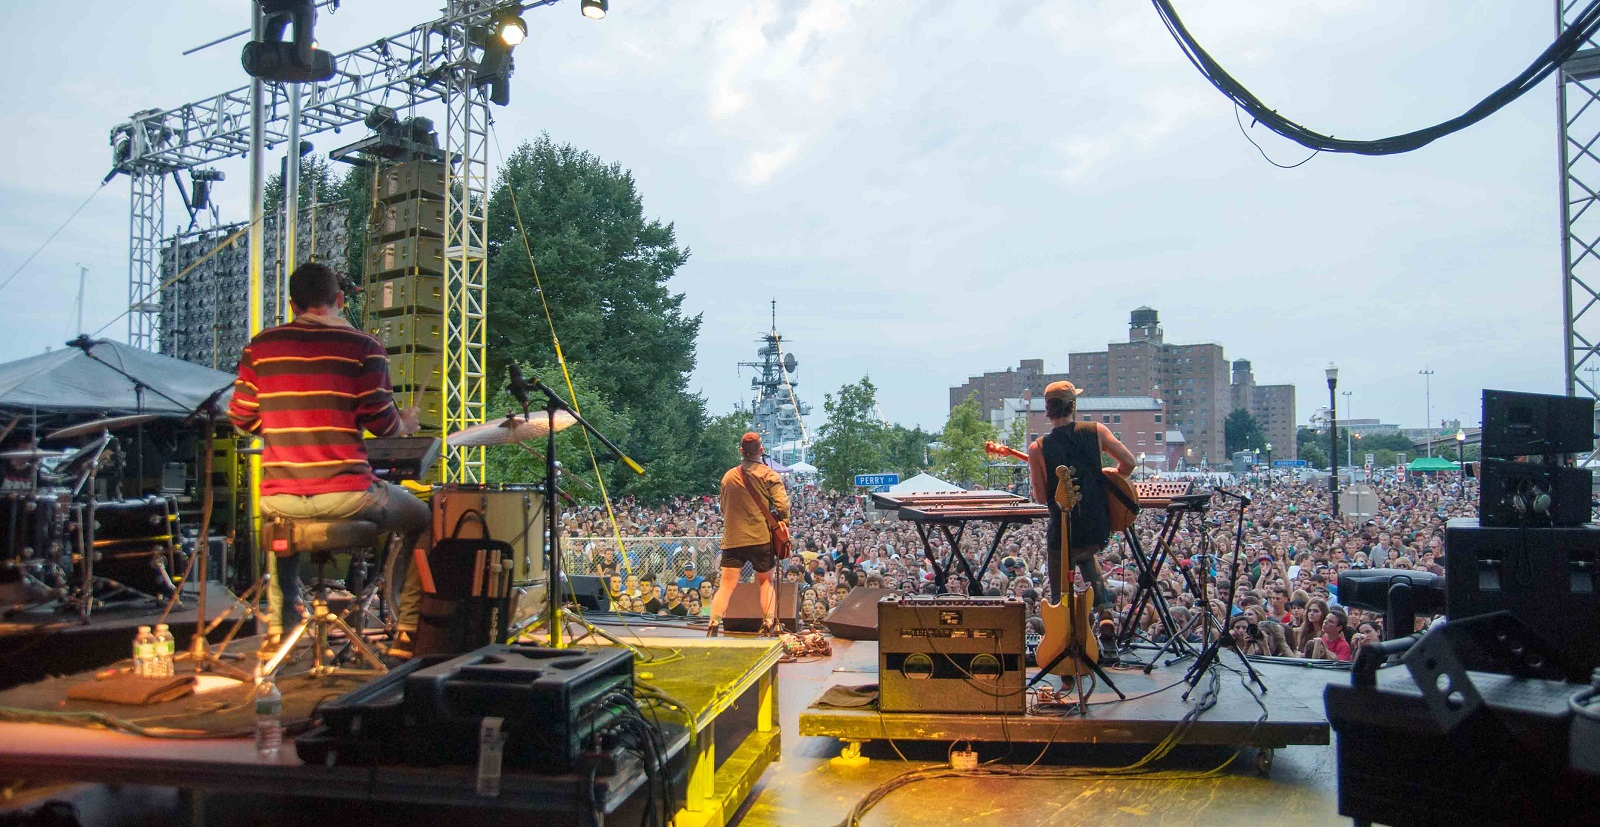 A scene from backstage at last year's Kerfuffle, the summer show hosted by Alternative Buffalo. (Erica Morano/Special to The News)